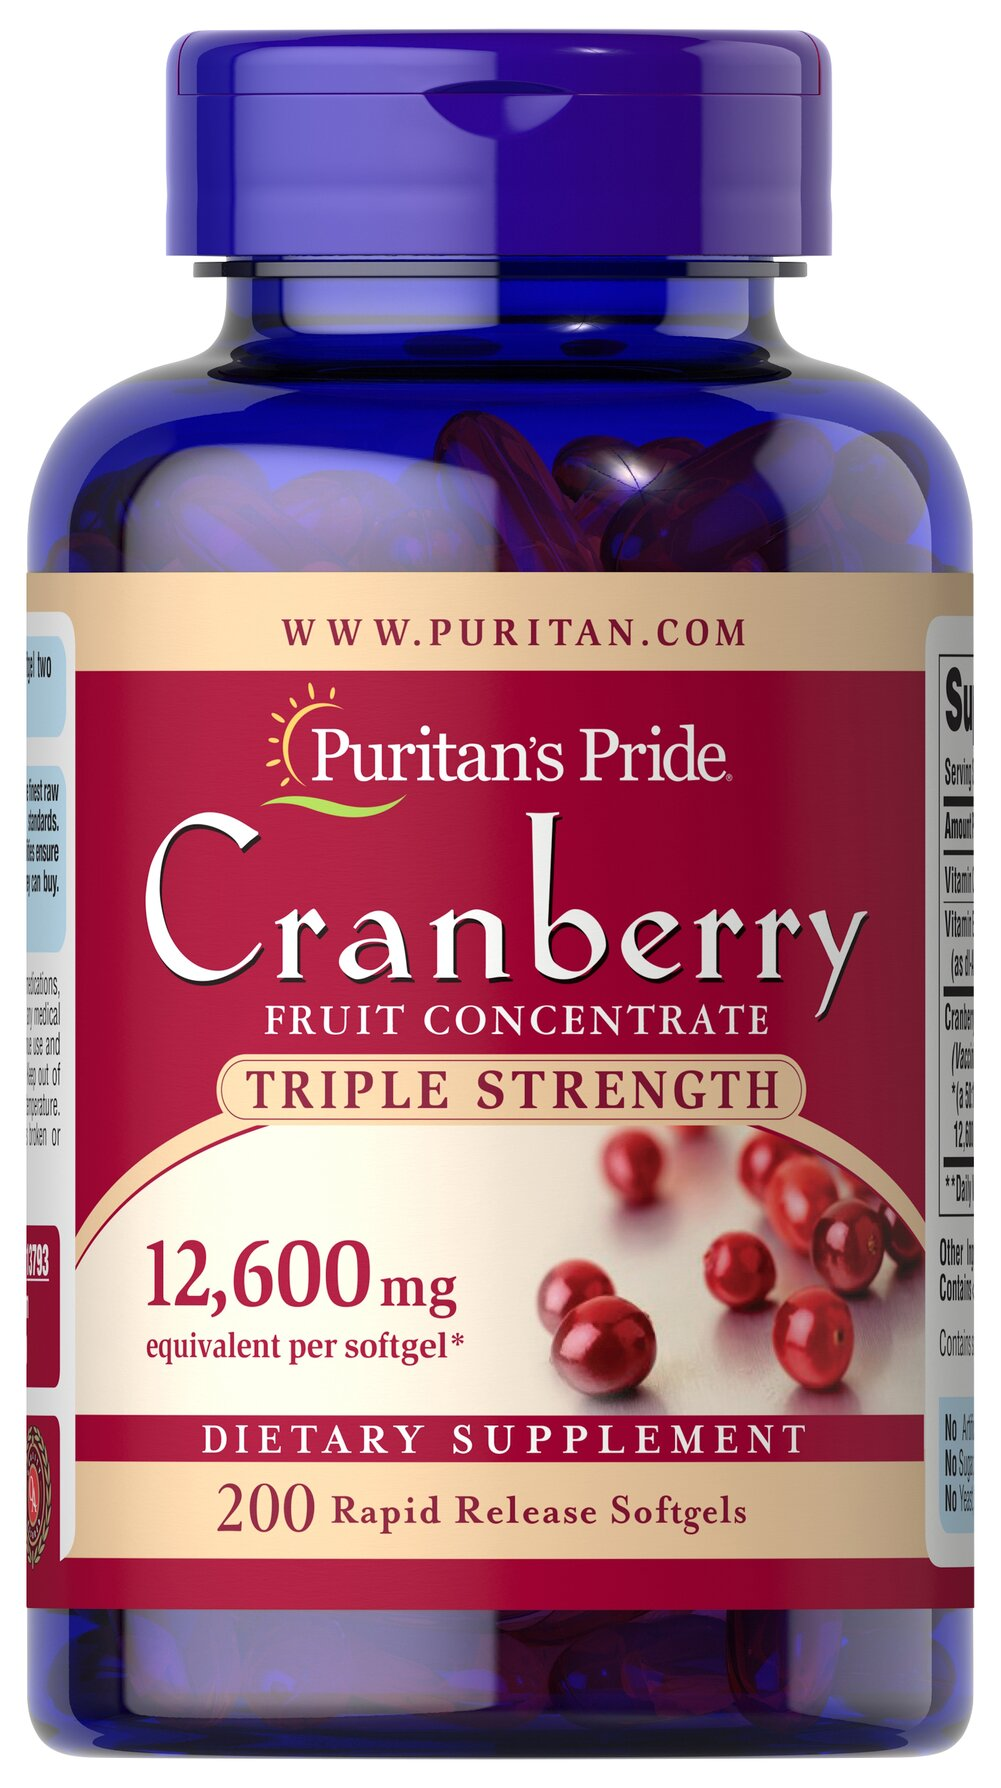 Triple Strength Cranberry Fruit Concentrate 12,600 mg <p>Supports Urinary and Immune System Health**</p><p>Triple Strength Cranberry Concentrate contains 12,600 mg of cranberry concentrate per serving.</p><p>Cranberries  contain the nutritional benefits of proanthocyanidins.** This product  also contains Vitamin C, an antioxidant that plays a role in supporting  immune function, plus Vitamin E.**</p><br /> 200 Softgels 12600 mg $39.99